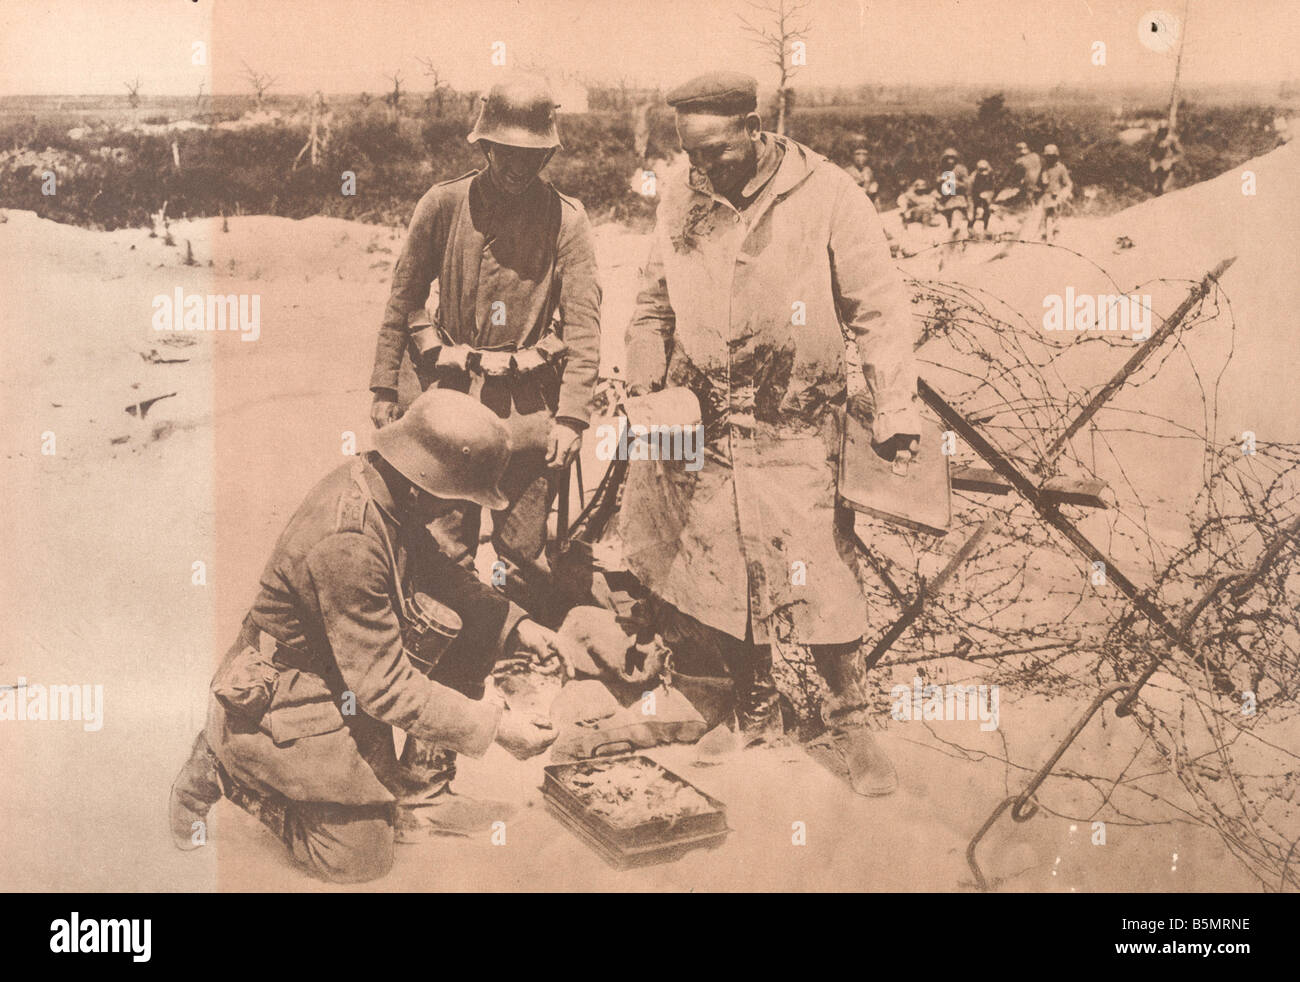 9 1918 5 29 A1 9 E WW1 West Fr Ger sold b Essen Photo World War 1 Western Front German major offensive March July - Stock Image